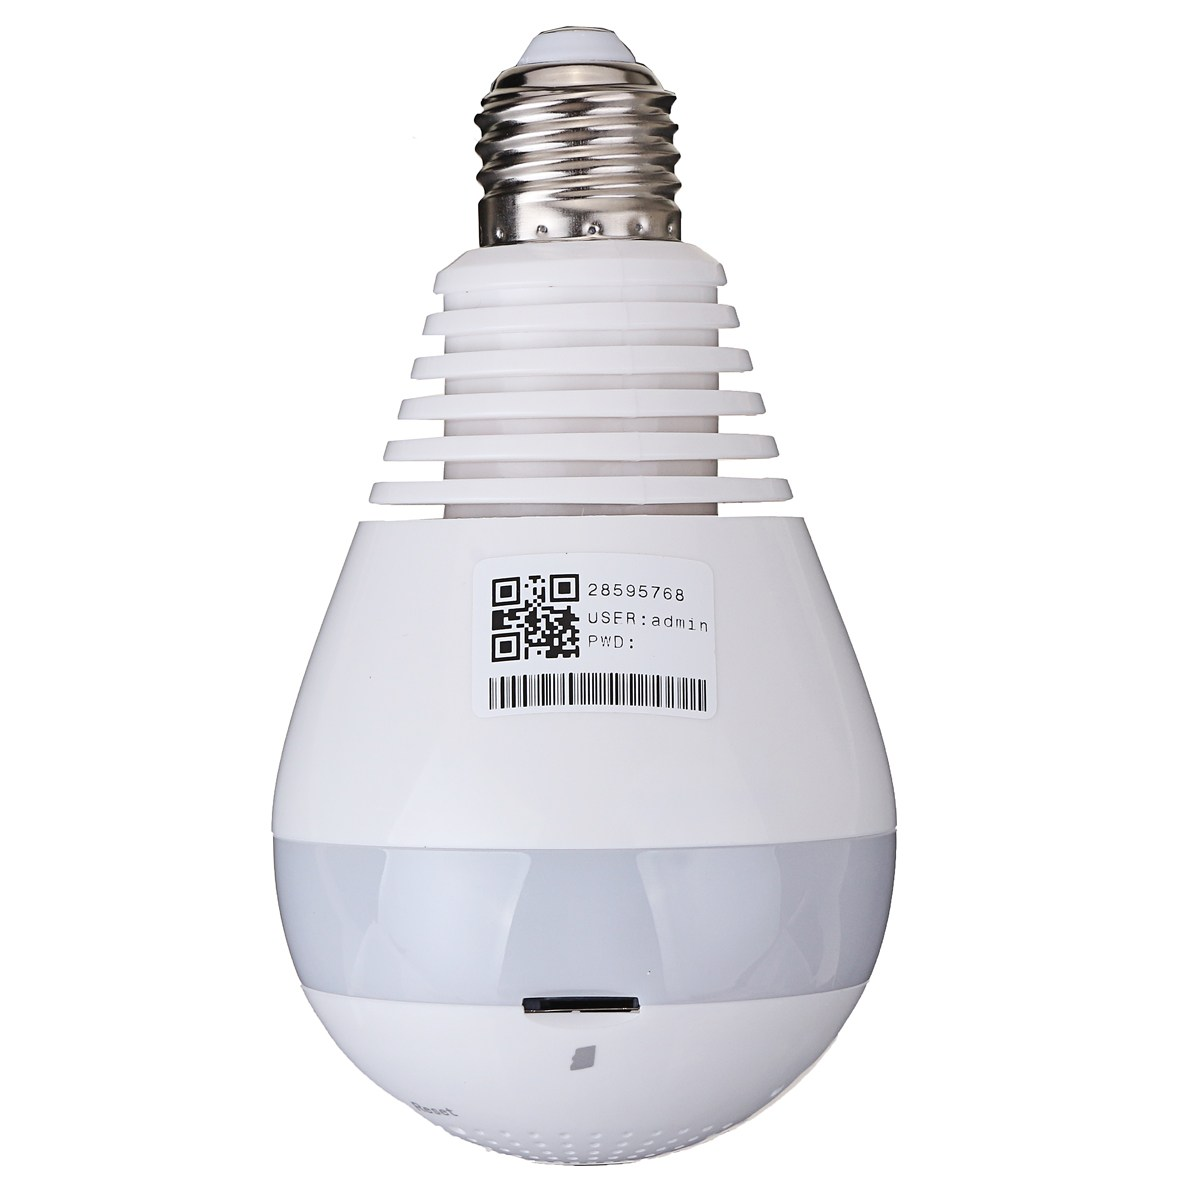 Safurance 1080P HD Wireless 360 degree  Wifi Panoramic Network Security CCTV Light Bulb IP Camera Home Security